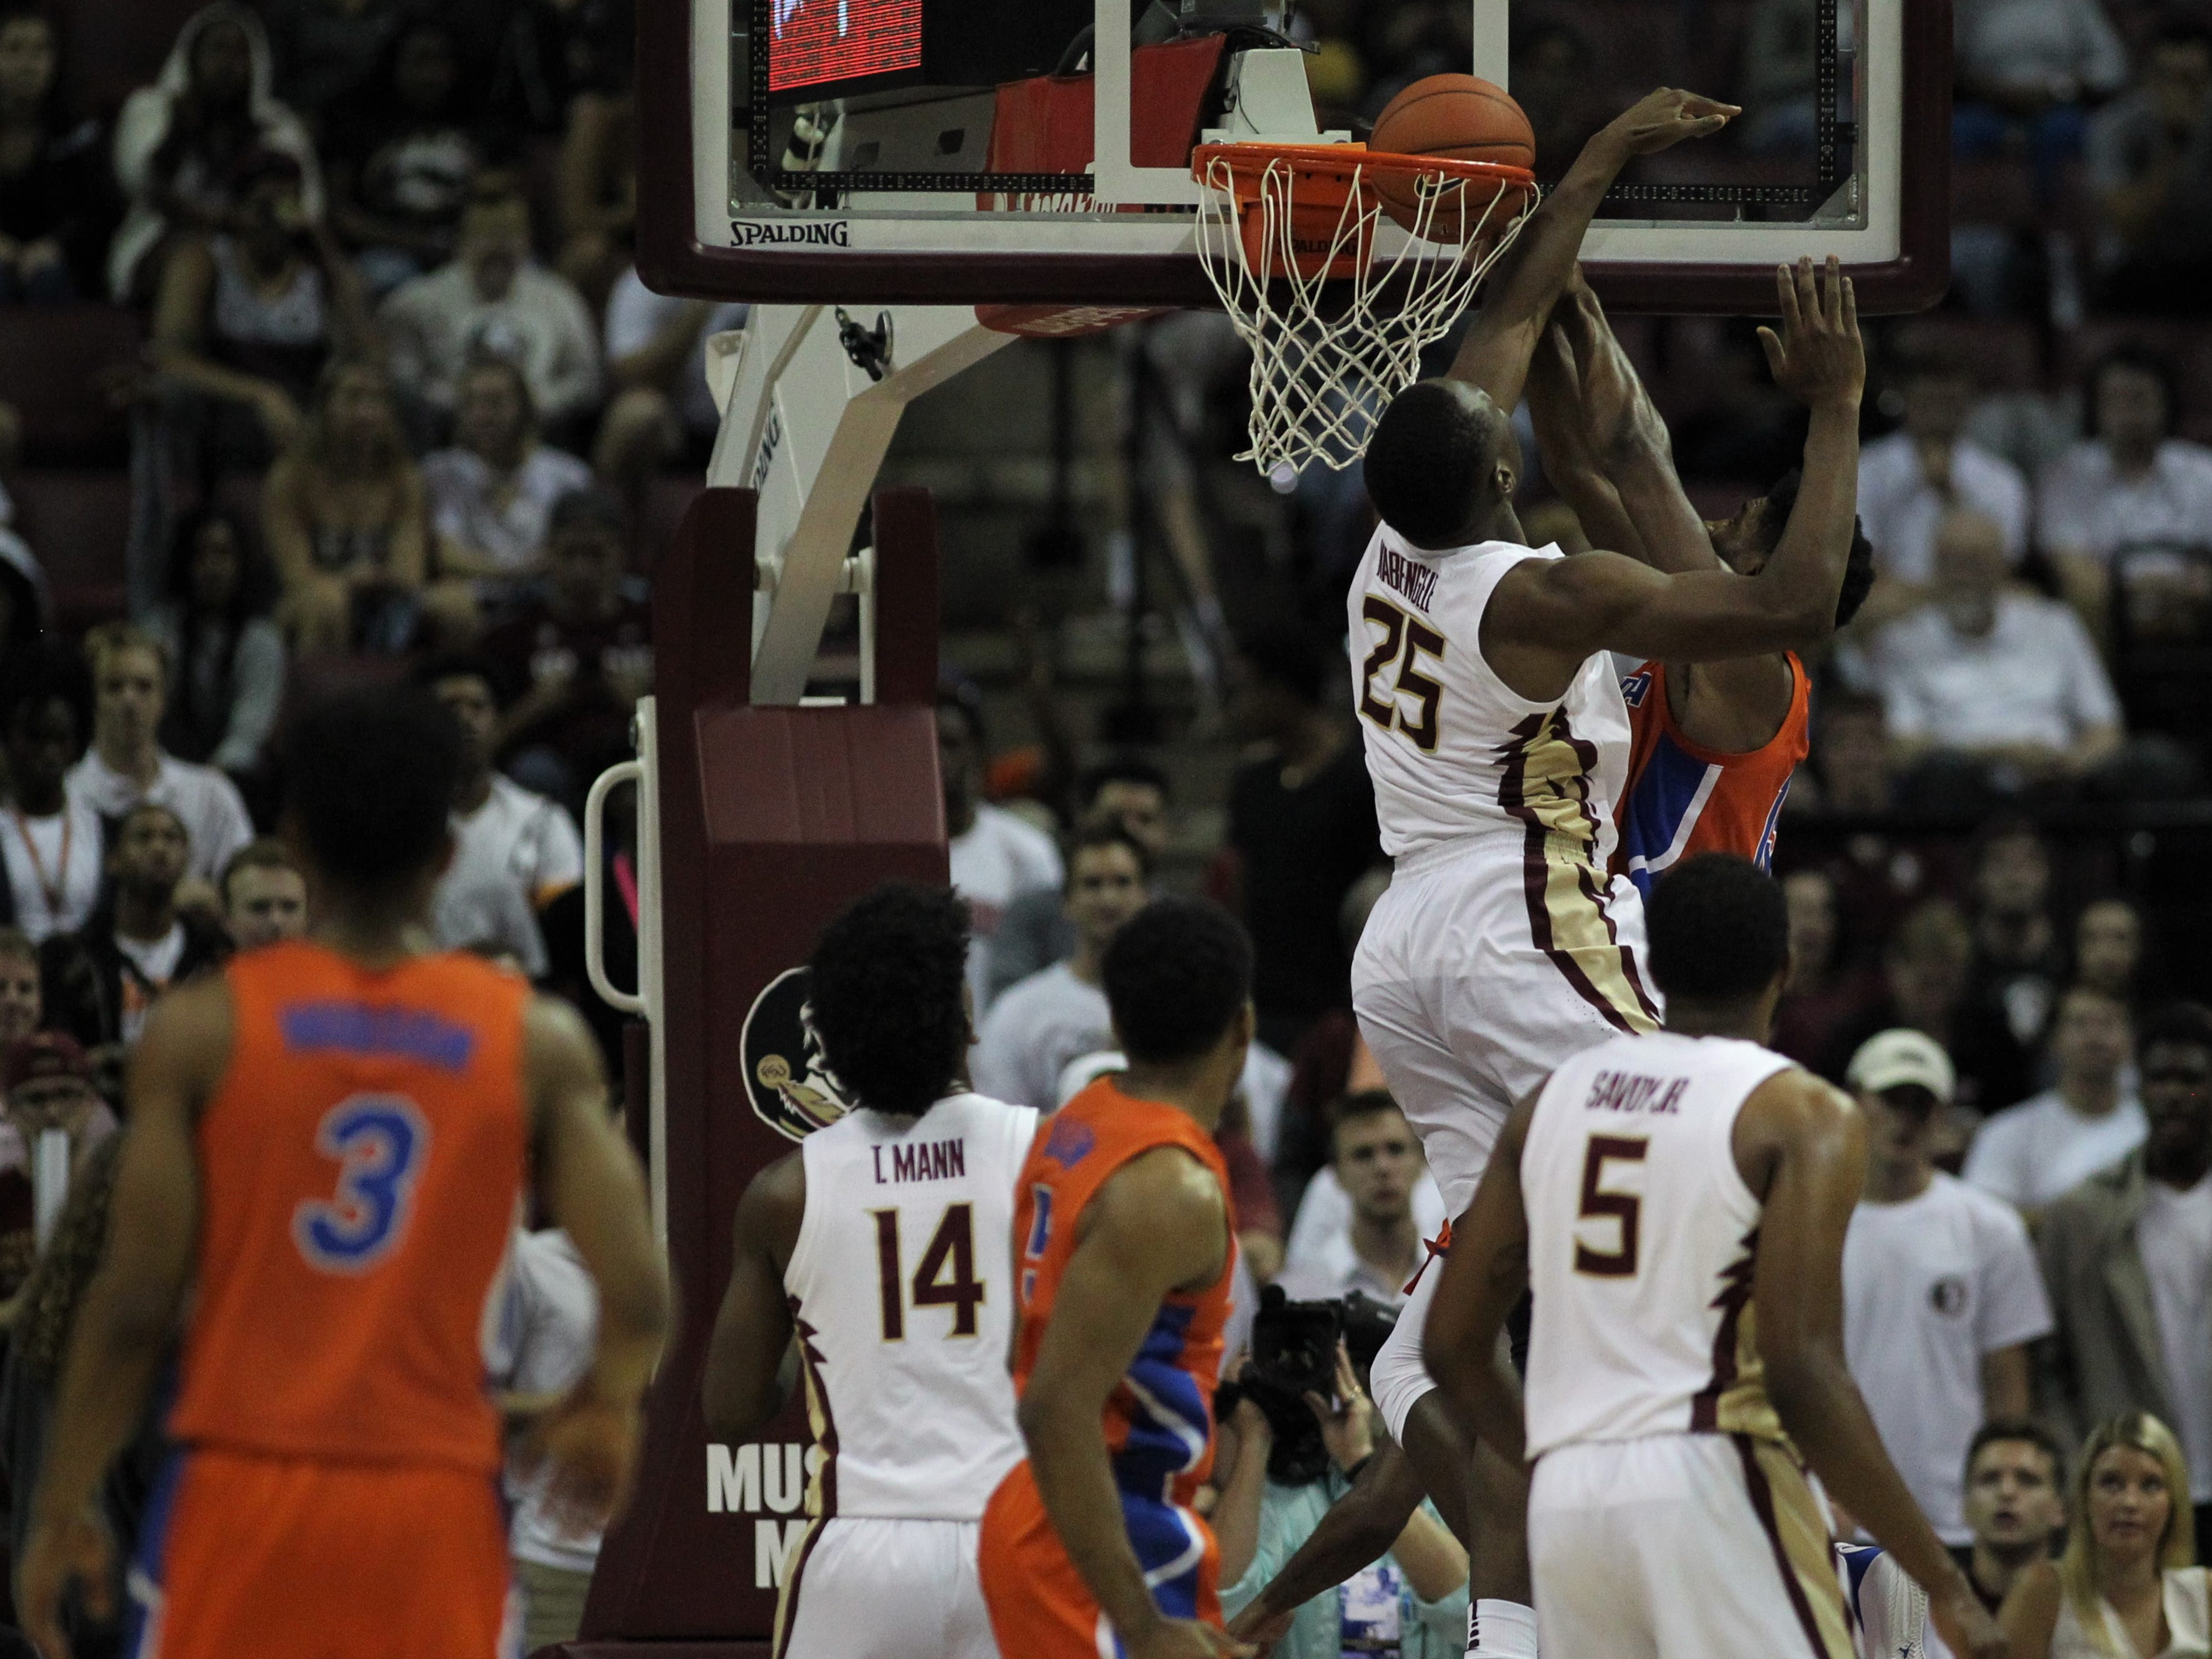 Florida State's Mfiondu Kabengele prevents a Florida dunk during the Sunshine Showdown game Tuesday at the Tucker Civic Center.